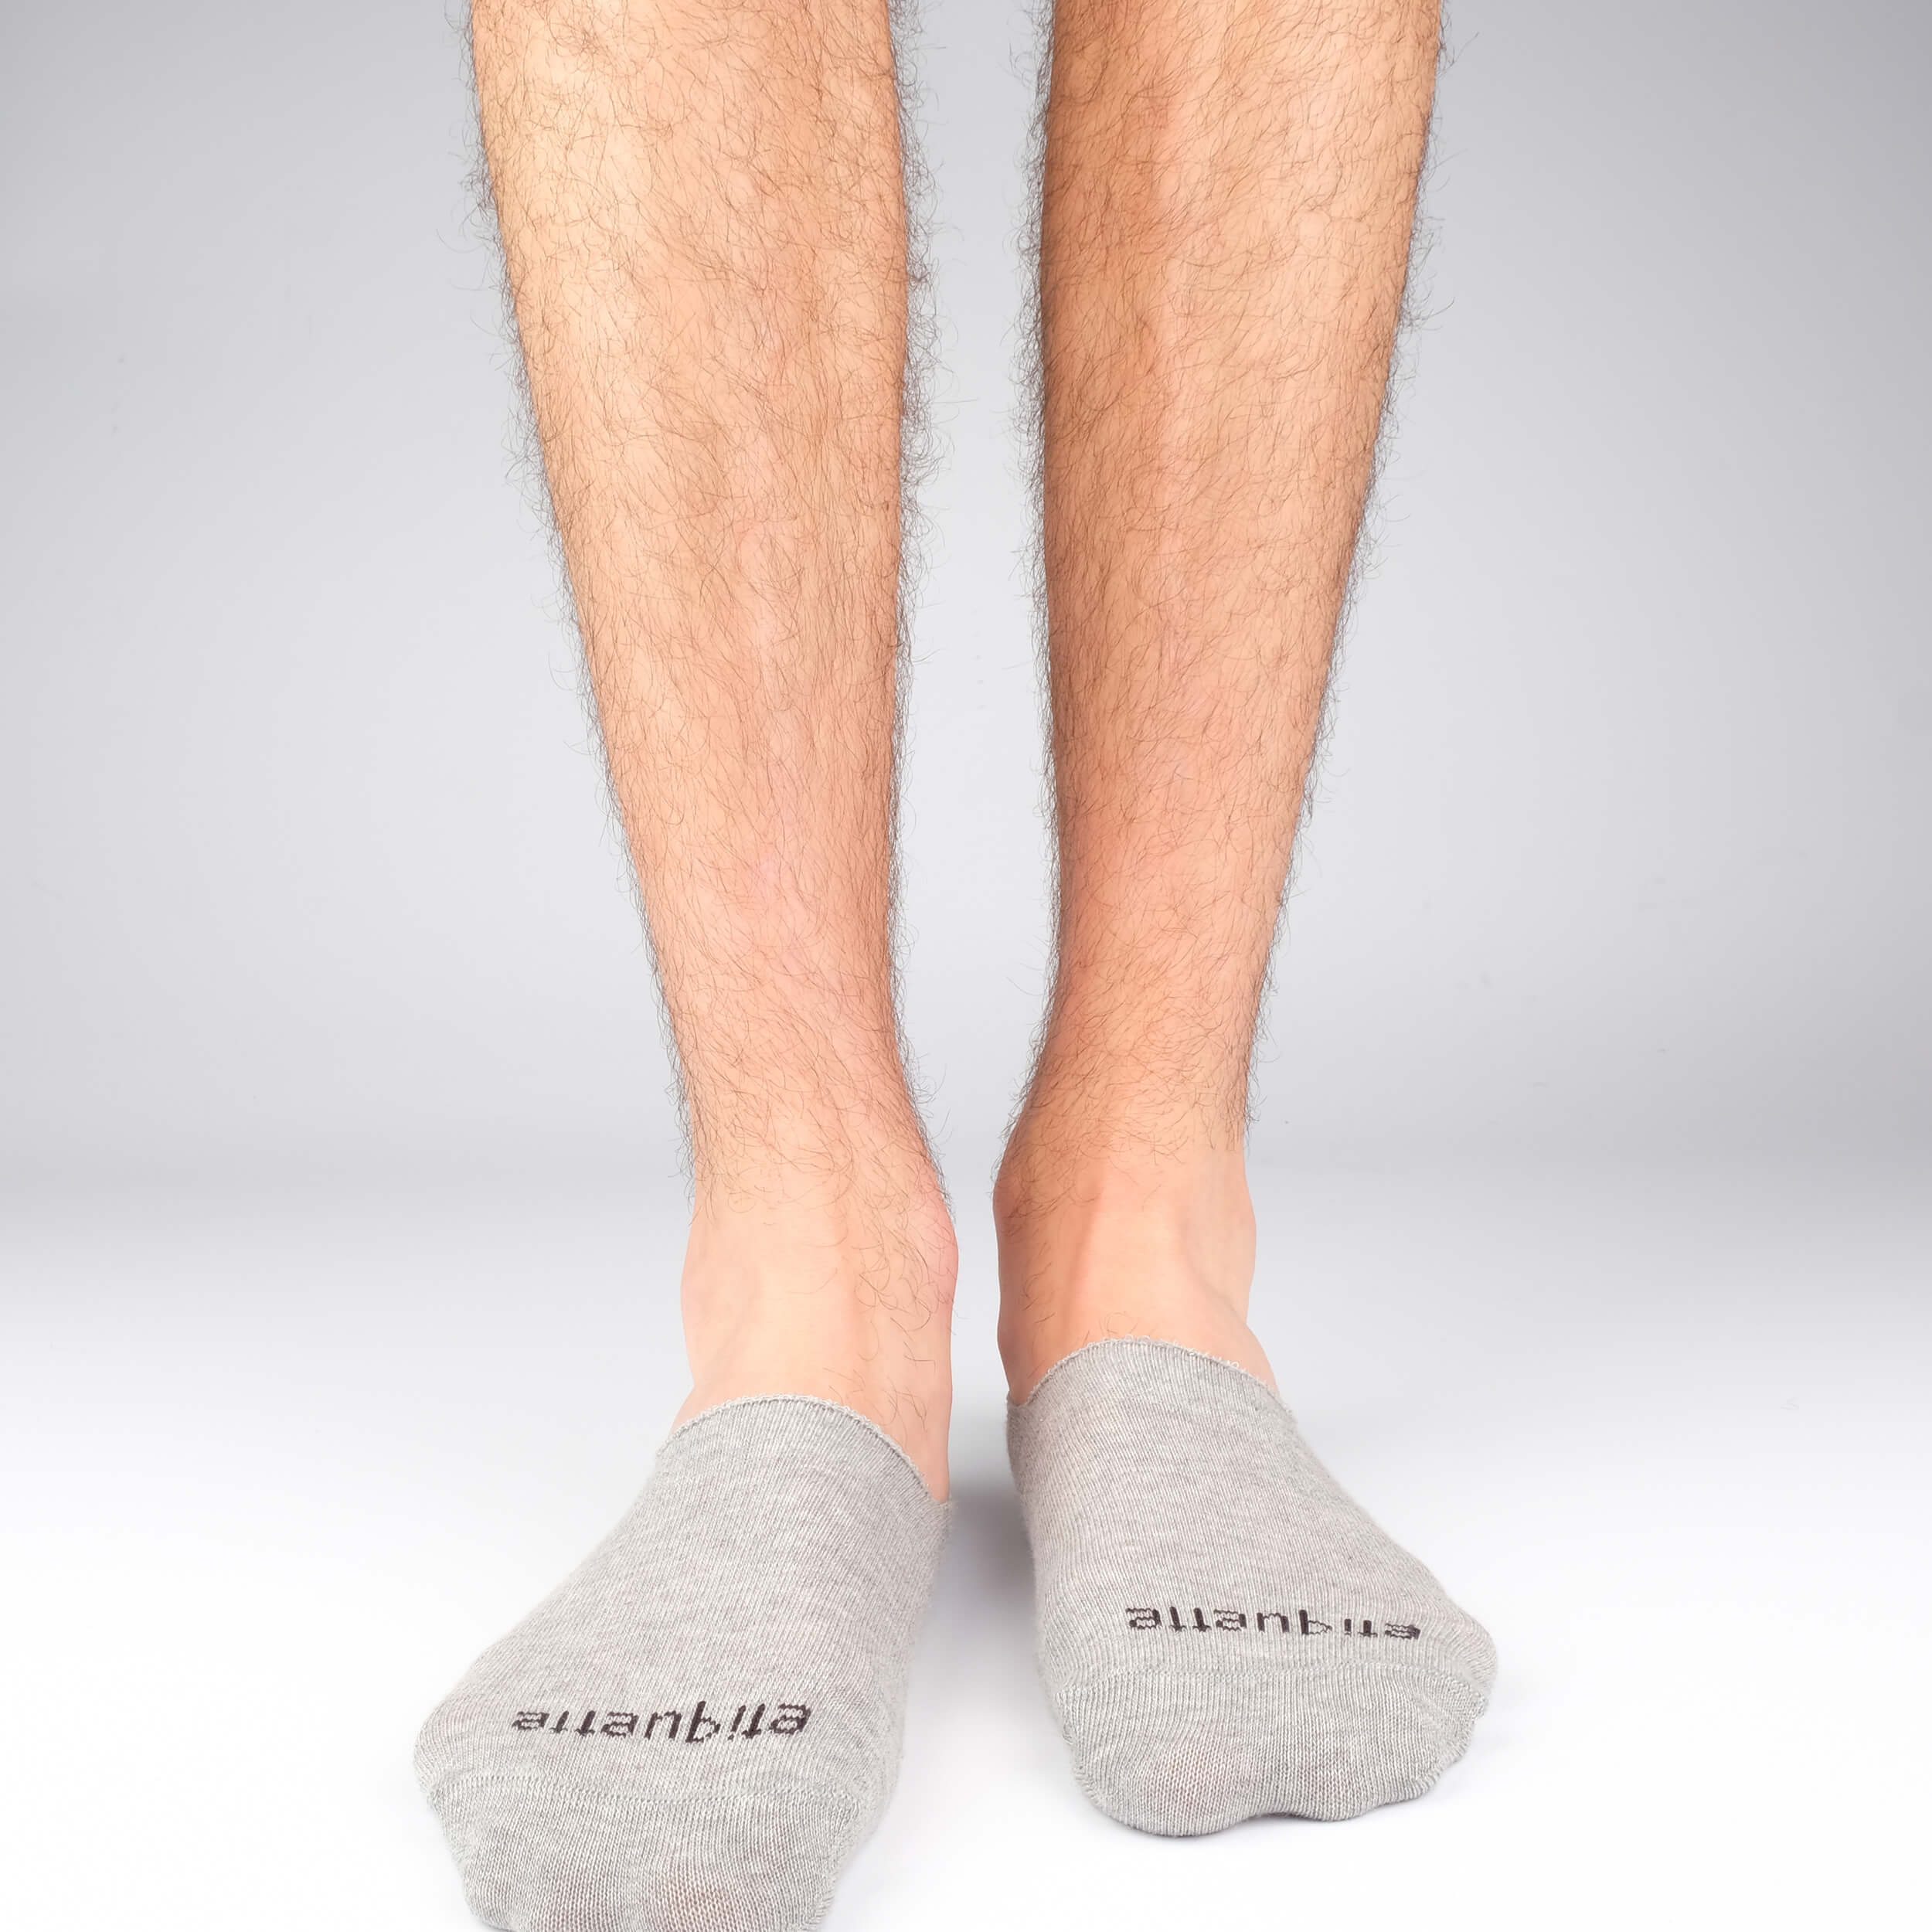 Men's No Show Socks - Grey